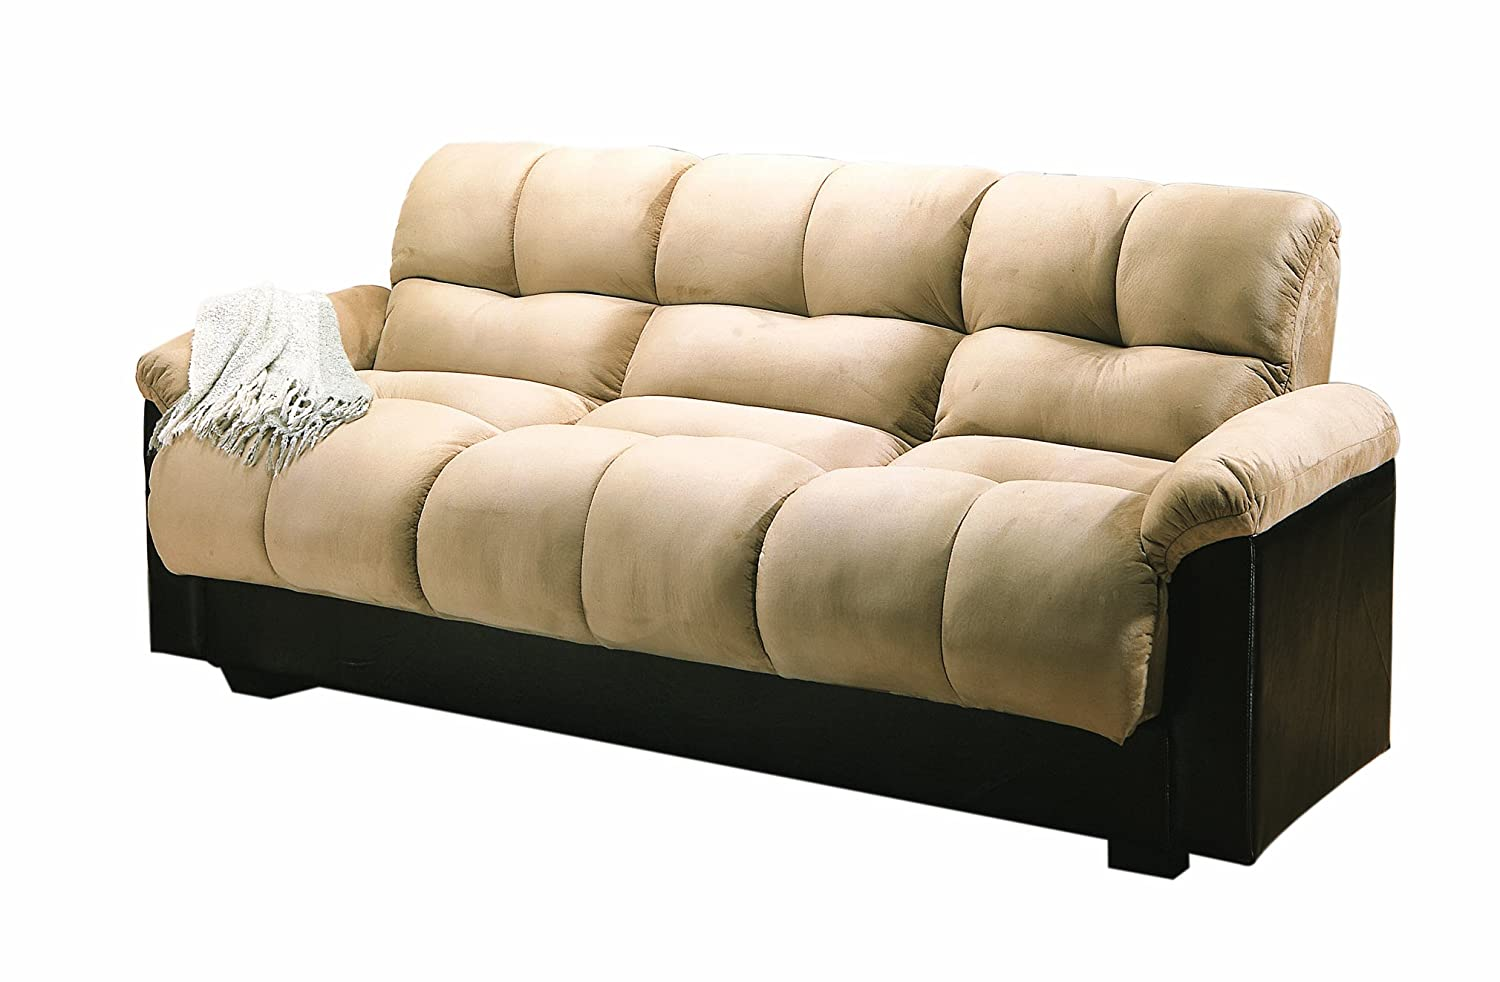 center clearance tv and futon innovation first class top furniture futons stands dining table chairs van art